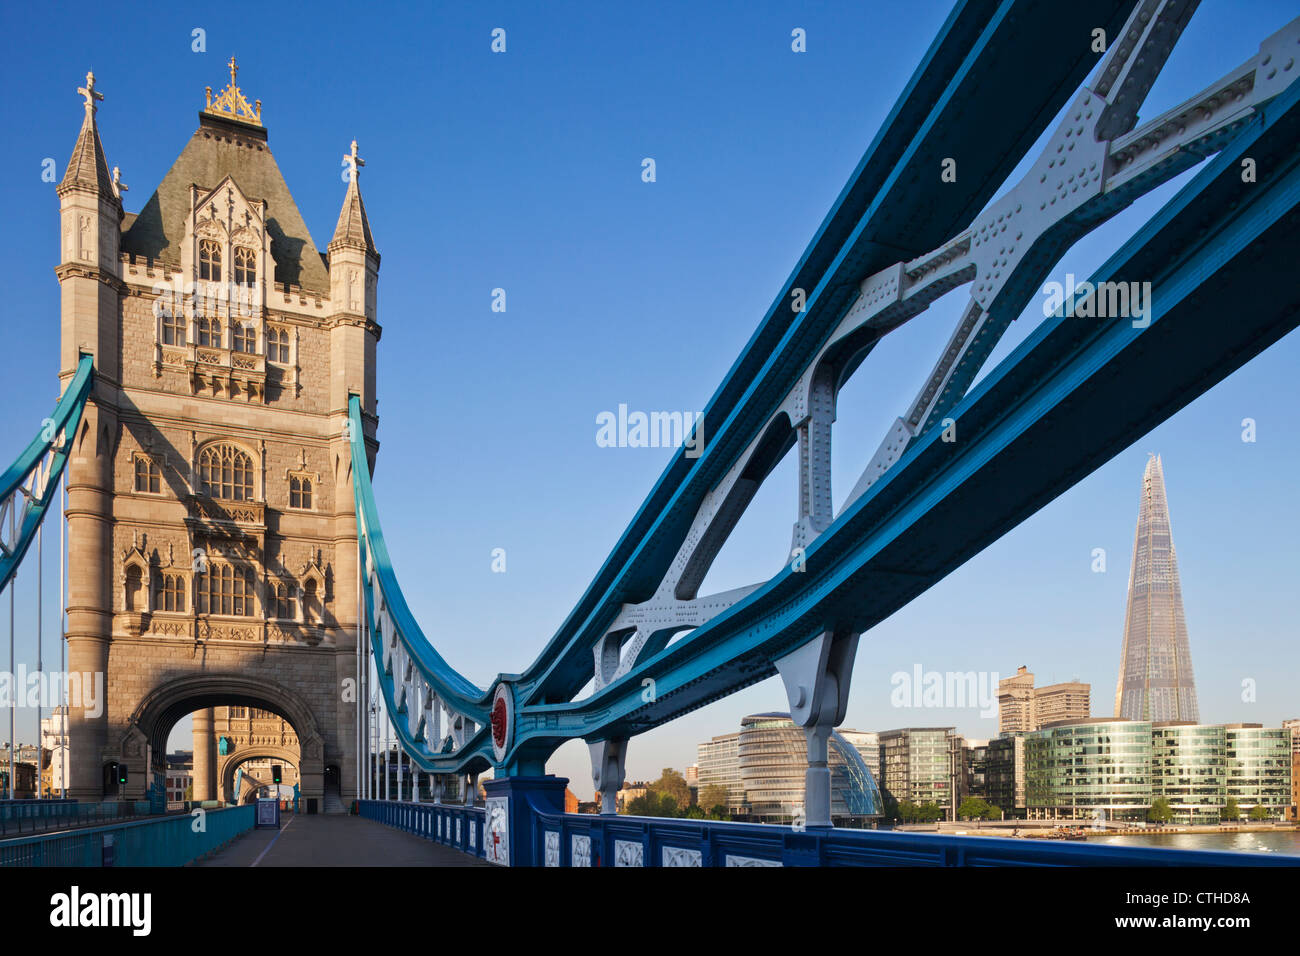 L'Angleterre, Londres, Southwark, le Tower Bridge et le tesson Banque D'Images